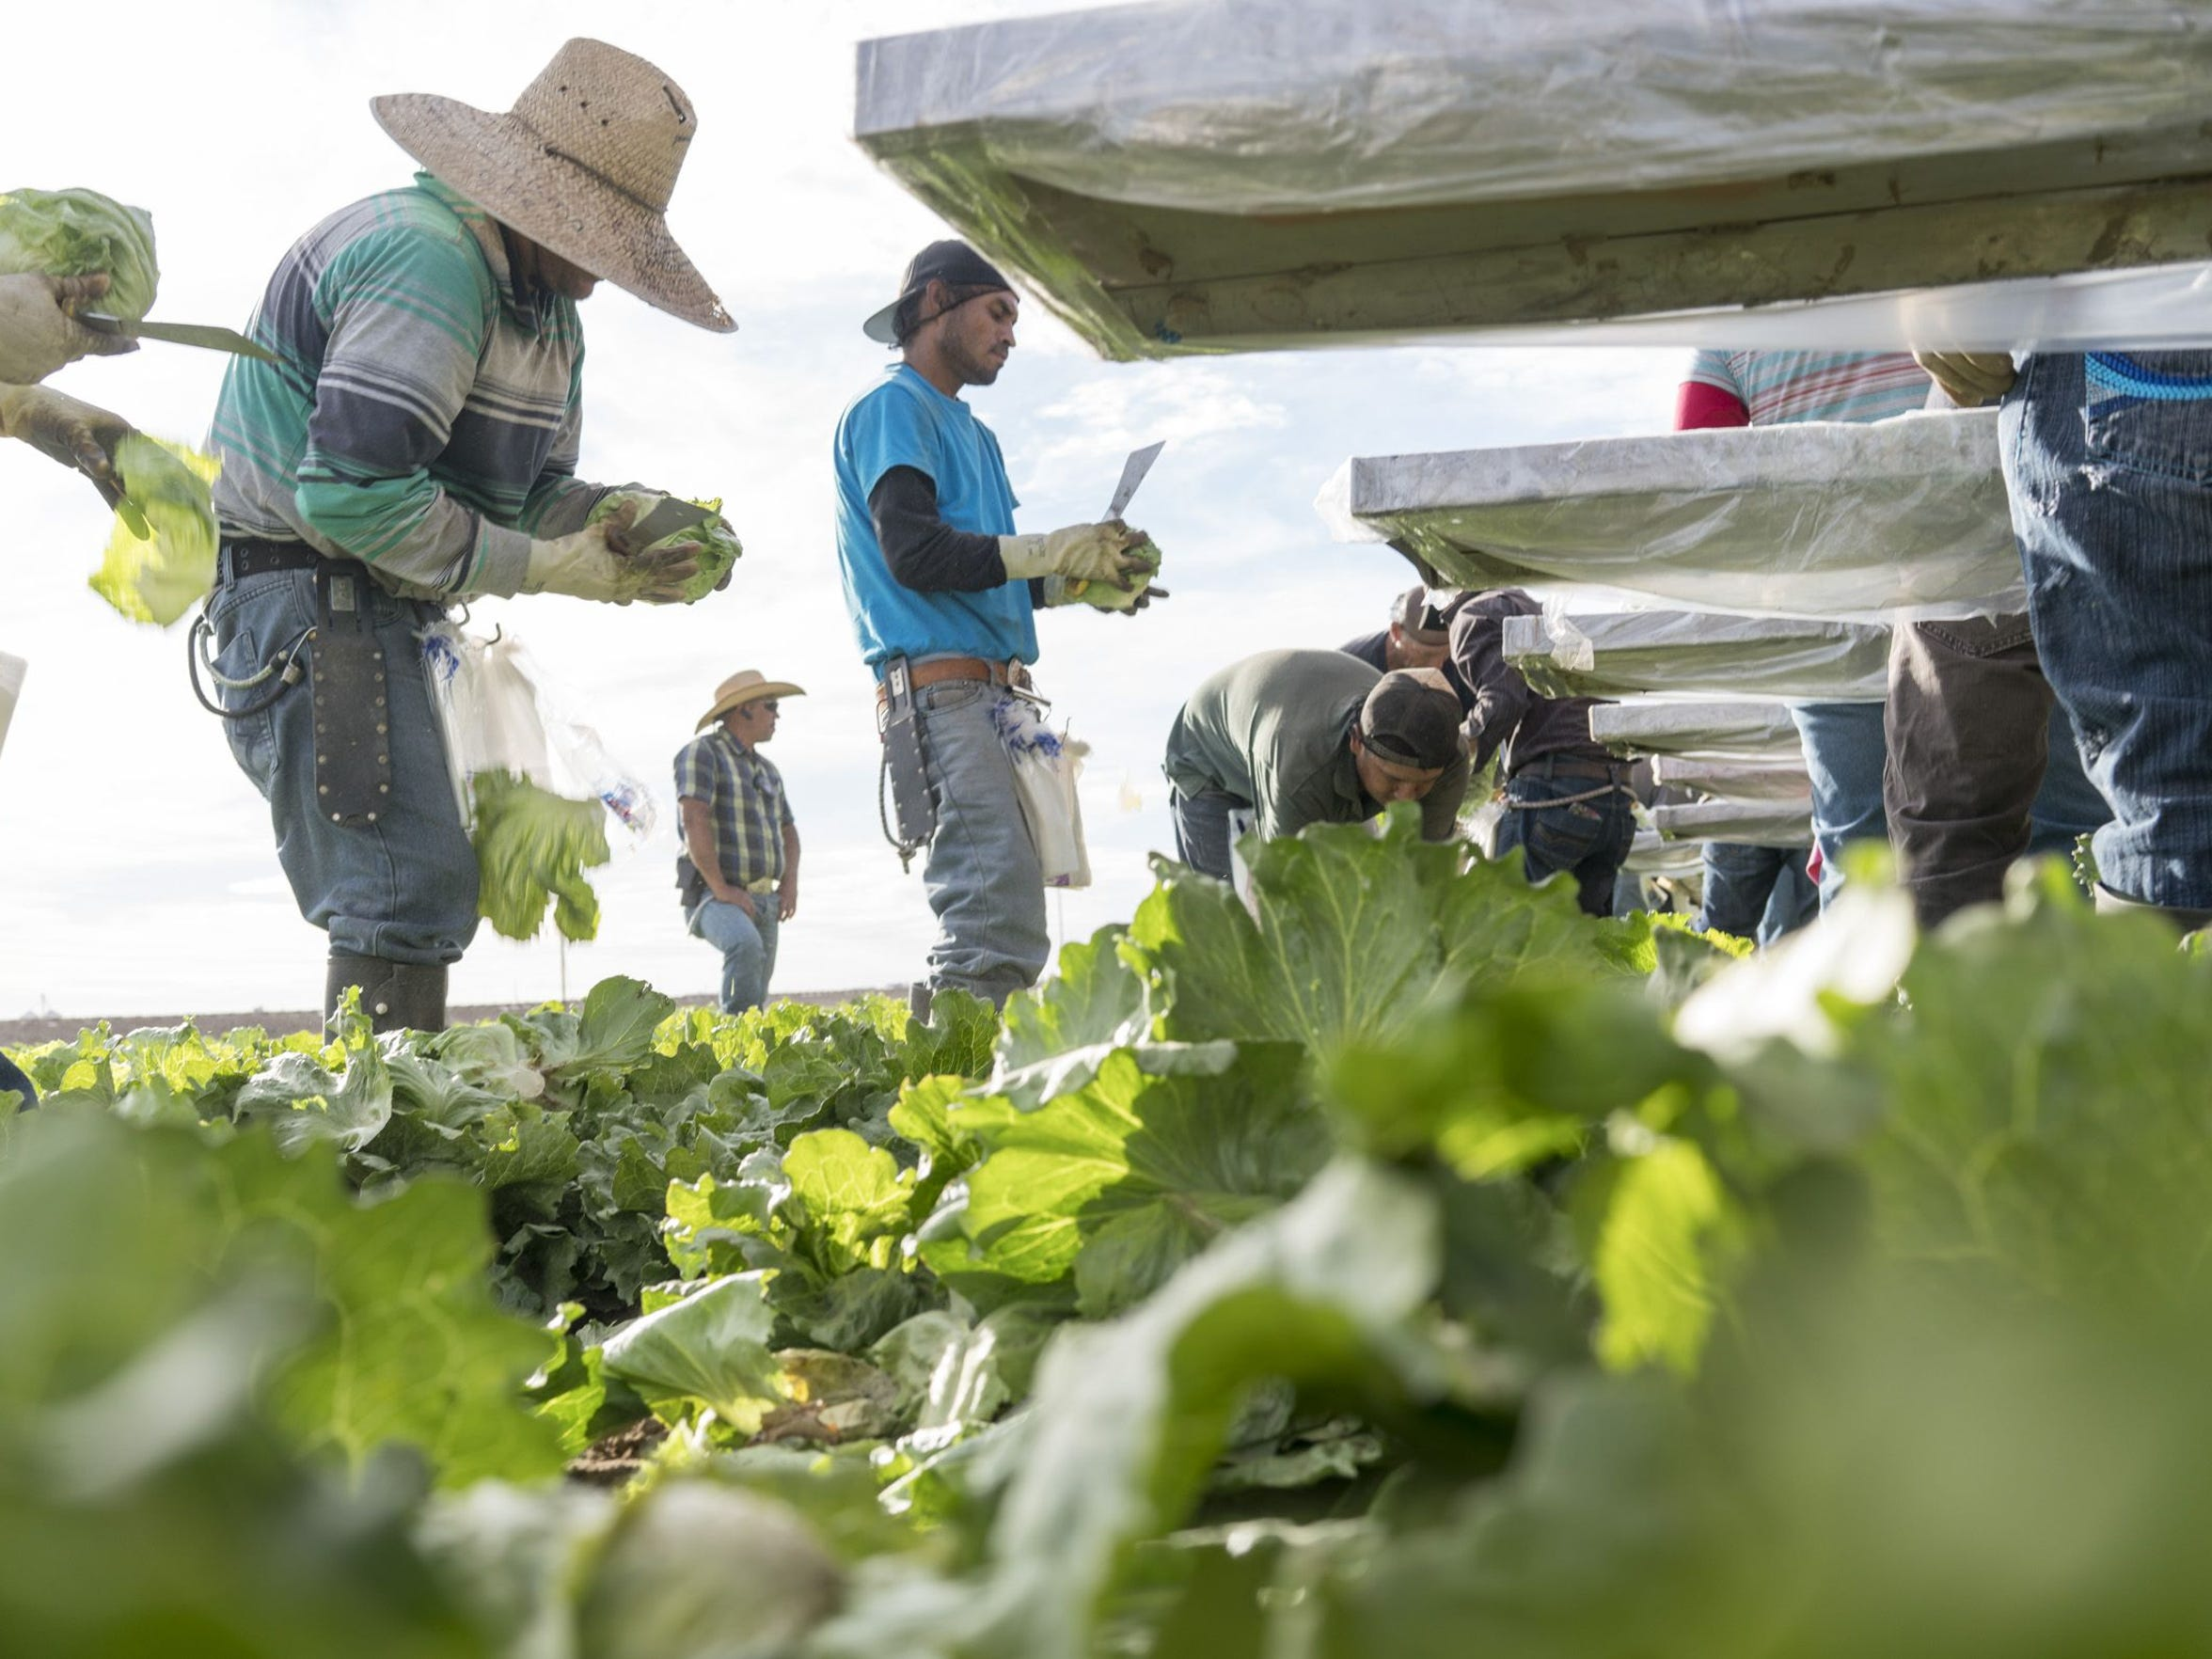 Migrant workers harvest iceberg lettuce at JV Farms in Yuma, Ariz. Wherever you live in North America, chances are the lettuce you eat in the winter comes from the Yuma area.